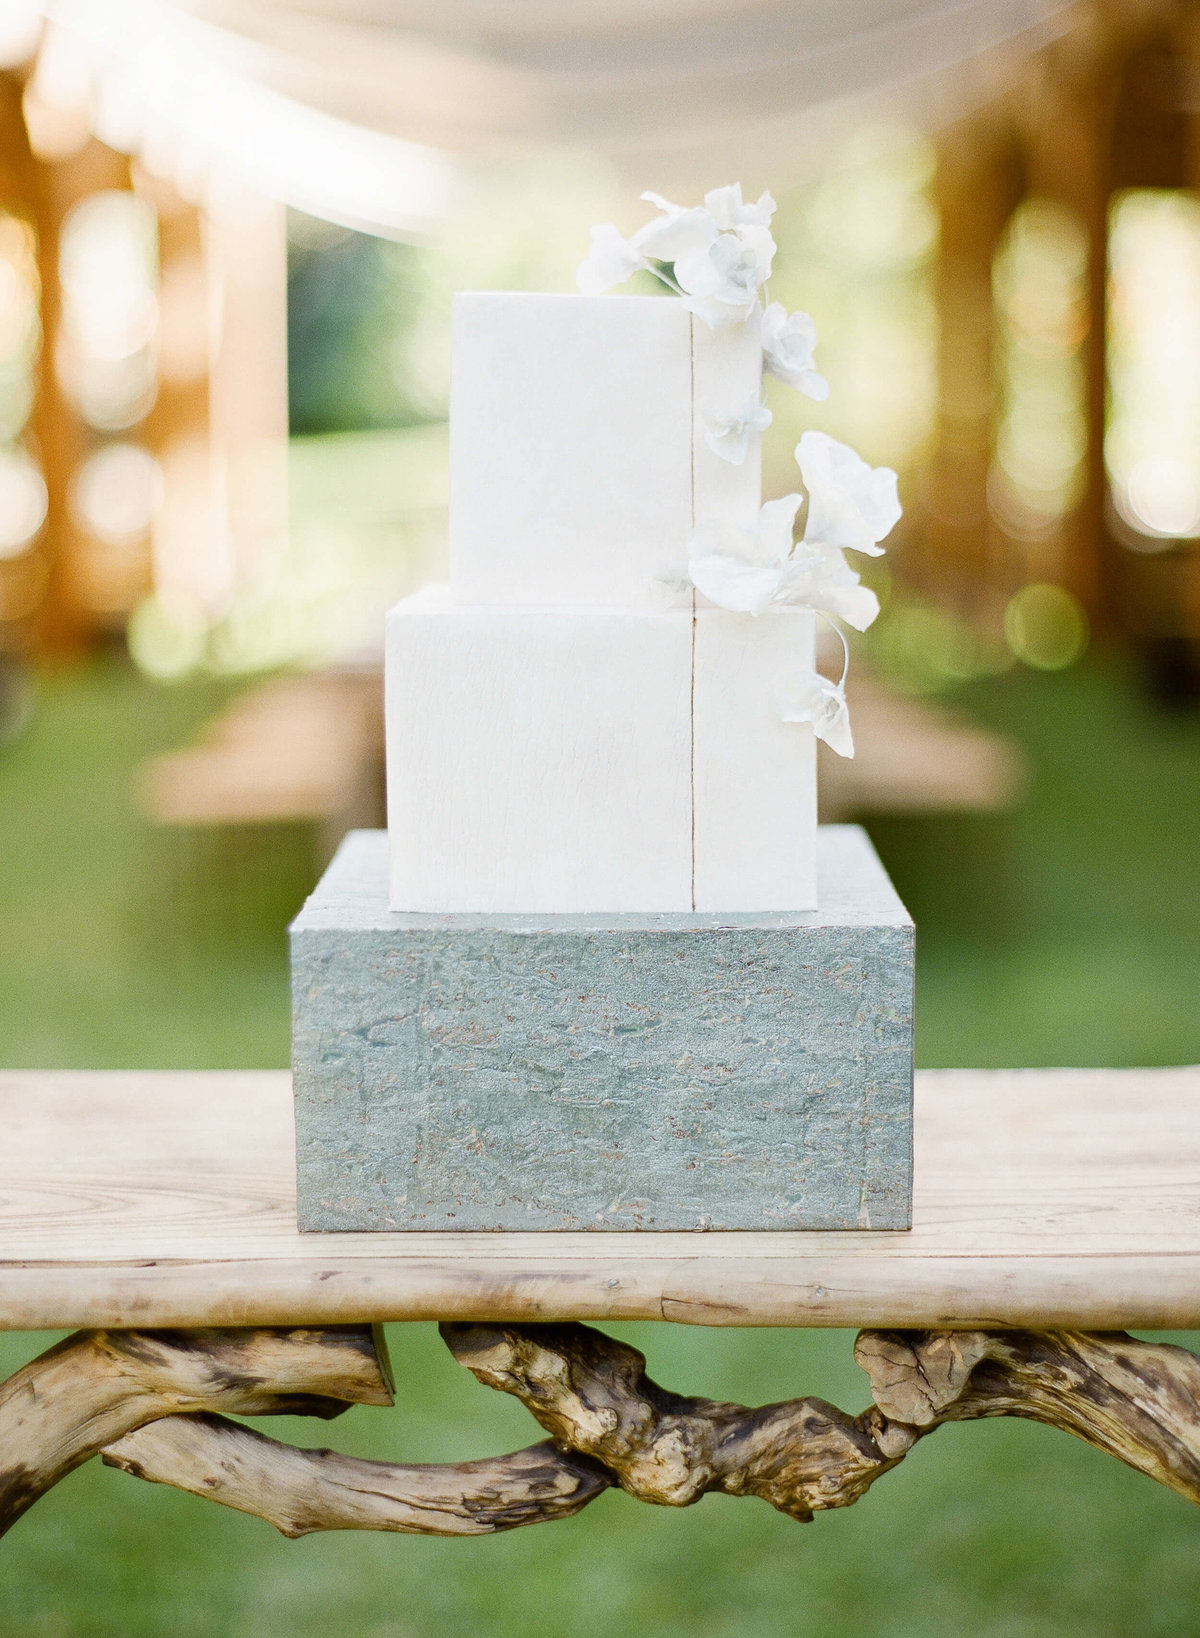 48-KTMerry-wedding-reception-modern-cake-NapaValley